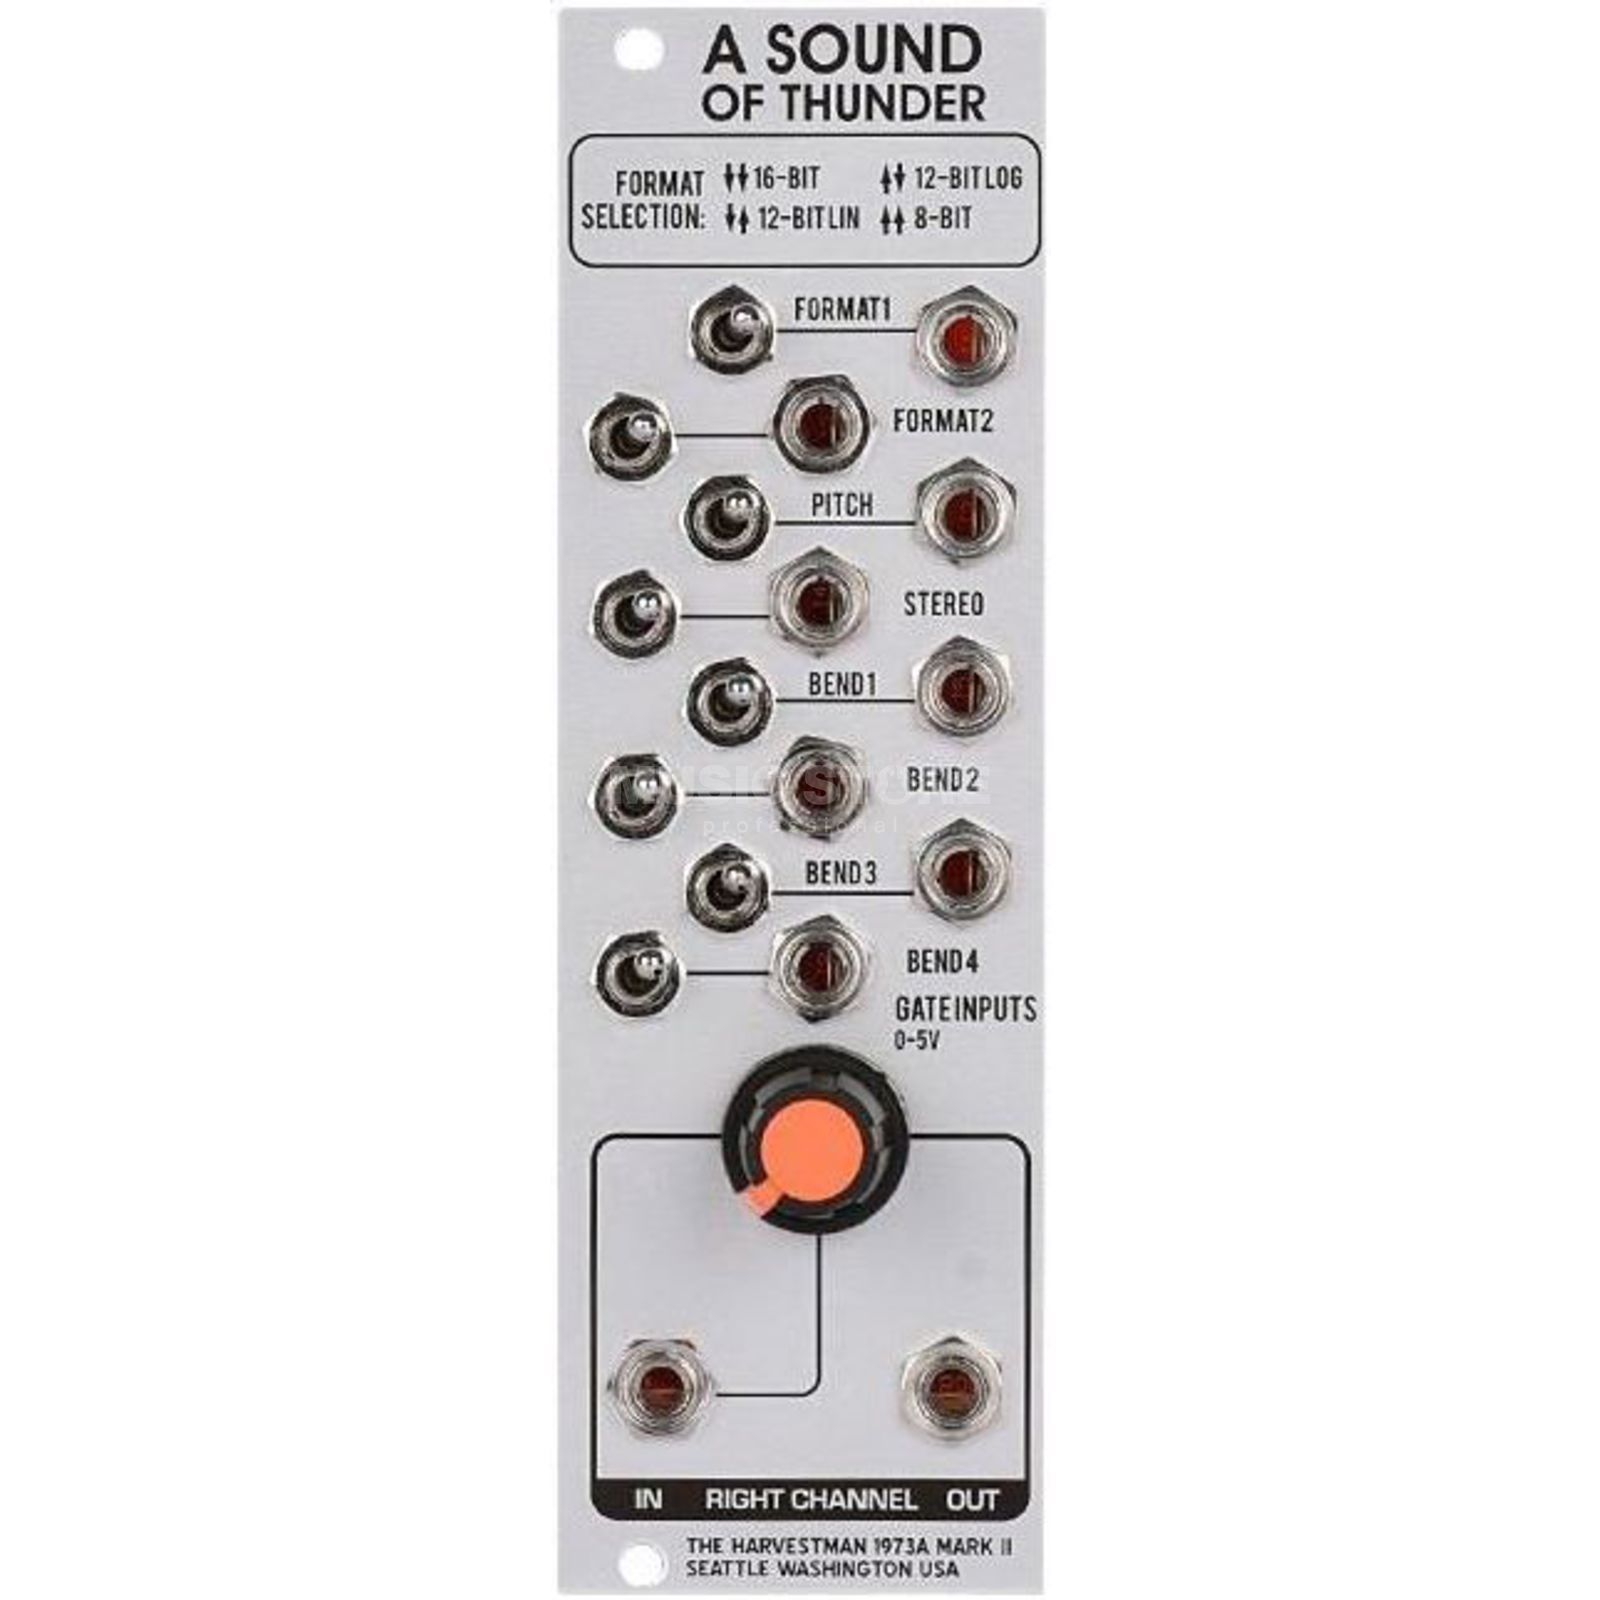 The Harvestman Sound of Thunder Tyme Seyfari Breakout Image du produit